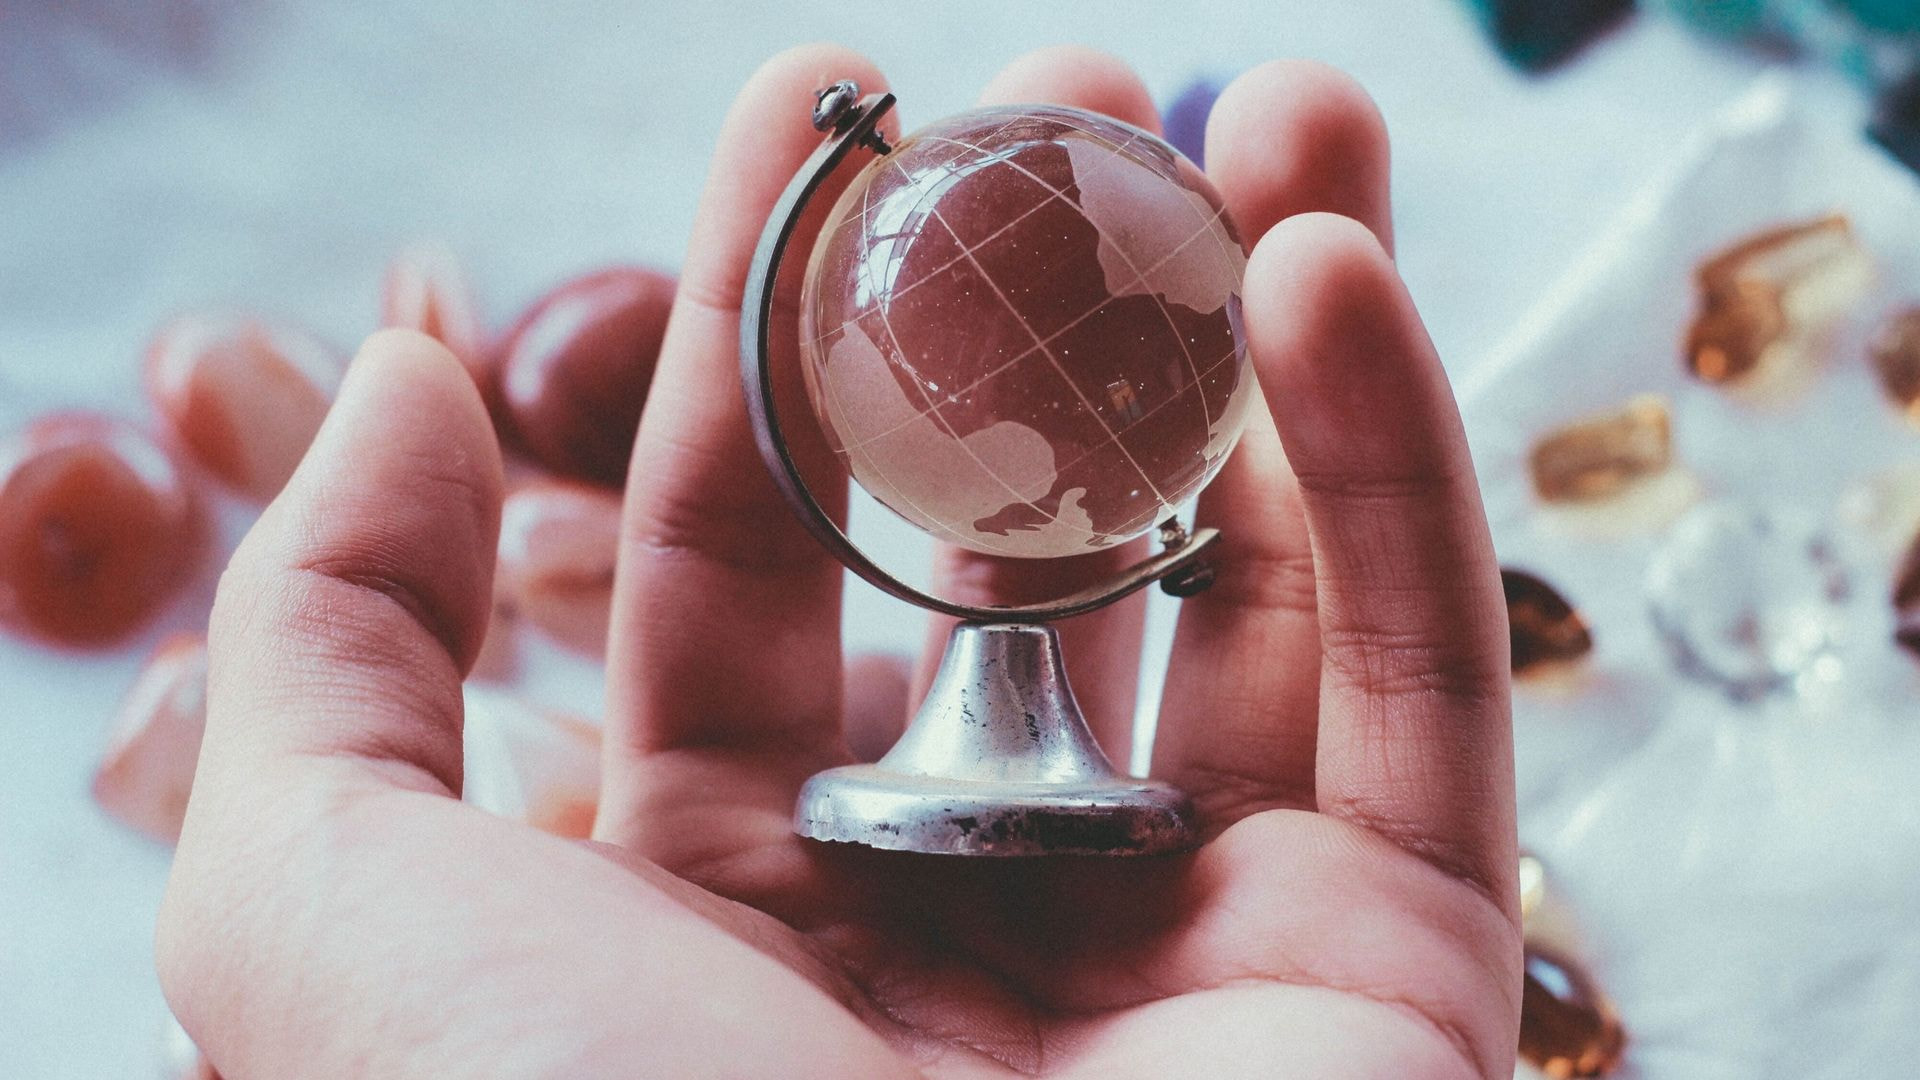 How To Globalize Your Business Over the Internet